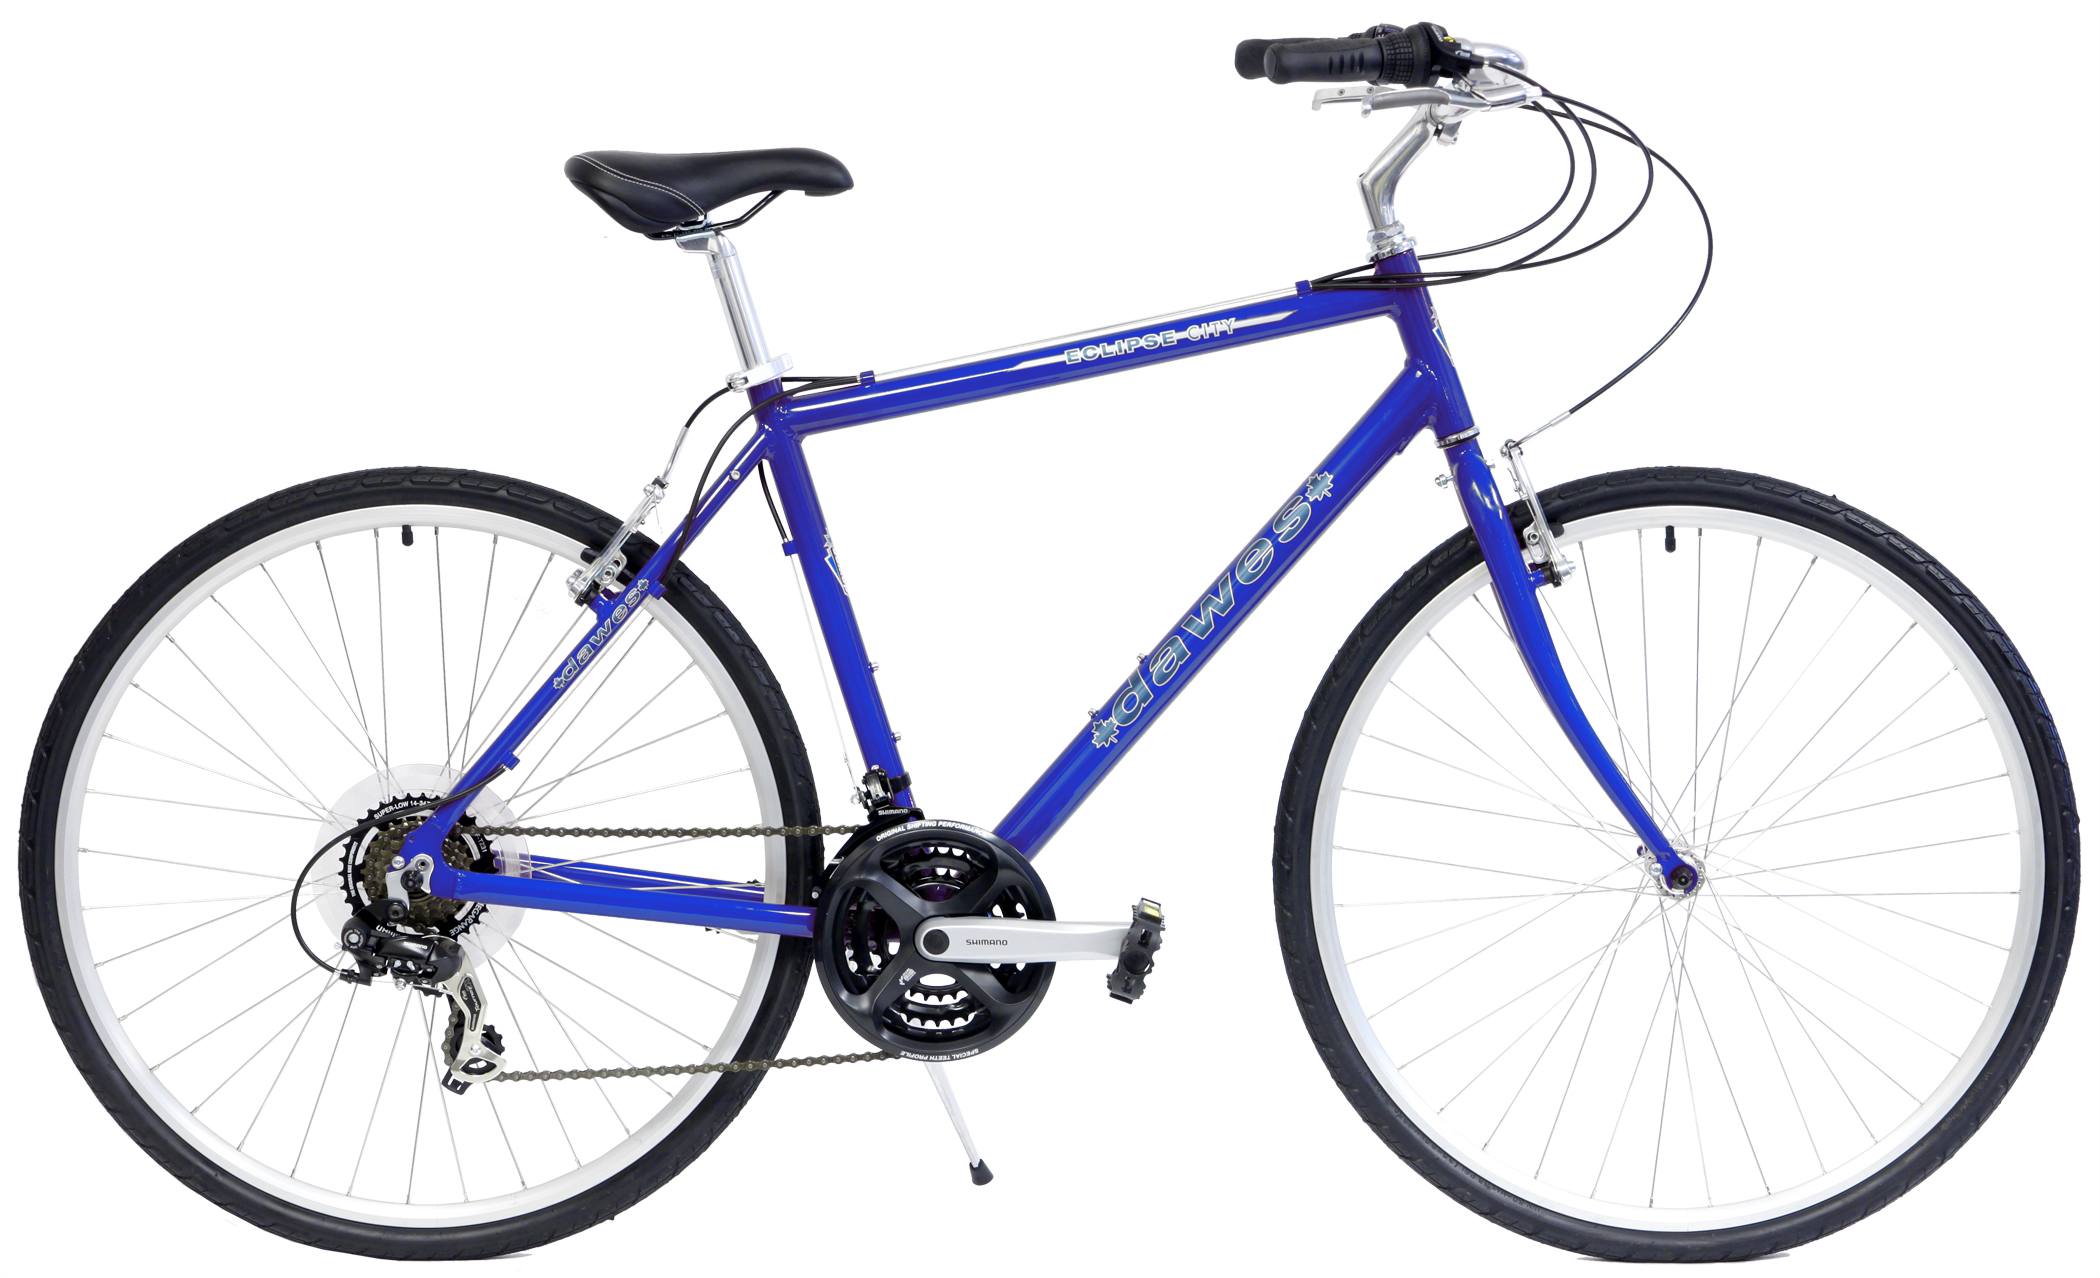 Save up to 60% off new Hybrid Flat Bar Road Bikes - Dawes Eclipse City